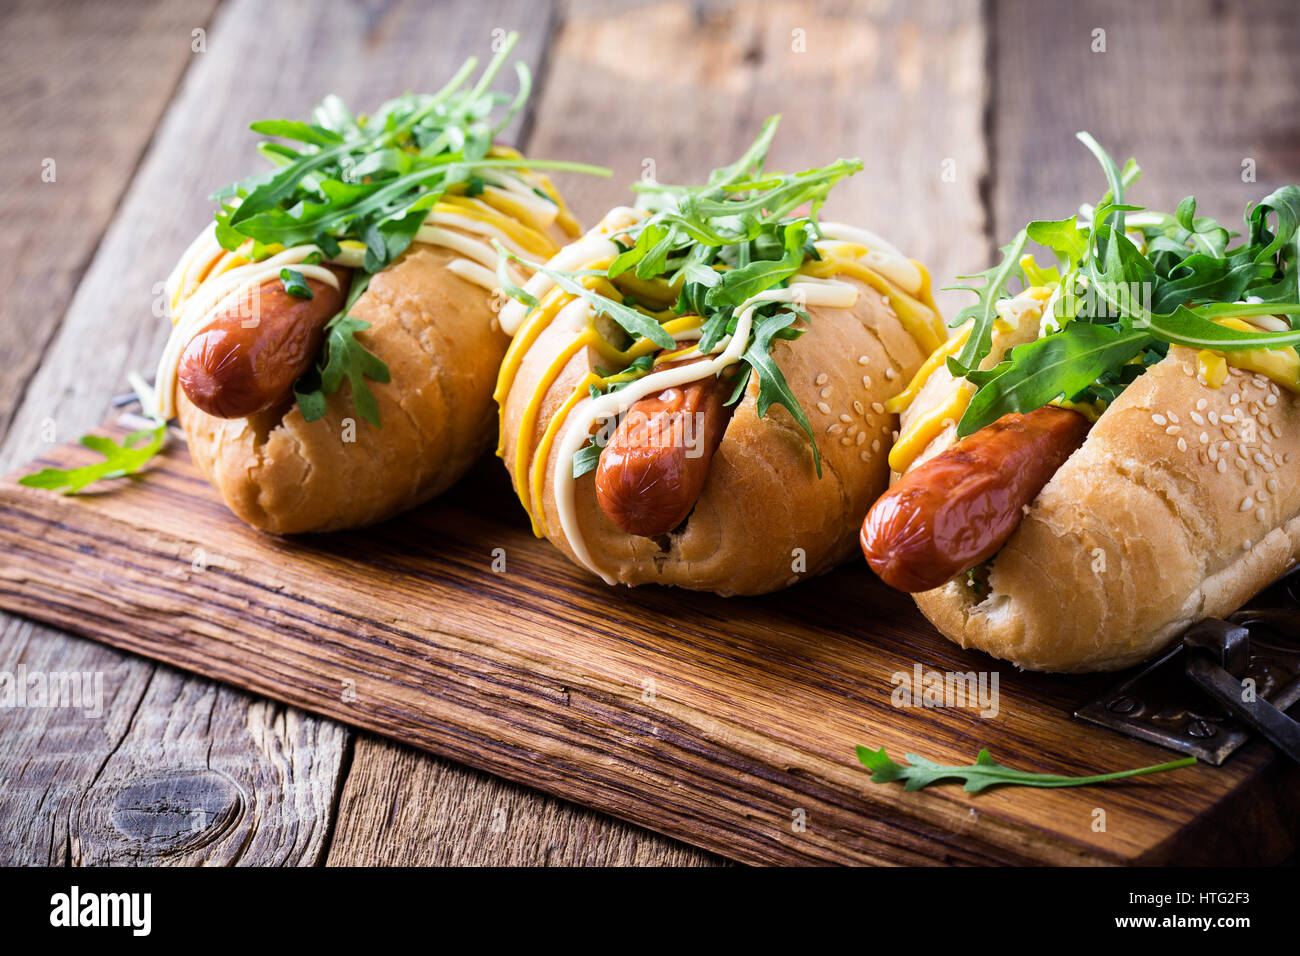 Beef hotdog on a bun with mustard and mayonnaise, topped with arugula on rustic wooden table, close up, selective - Stock Image